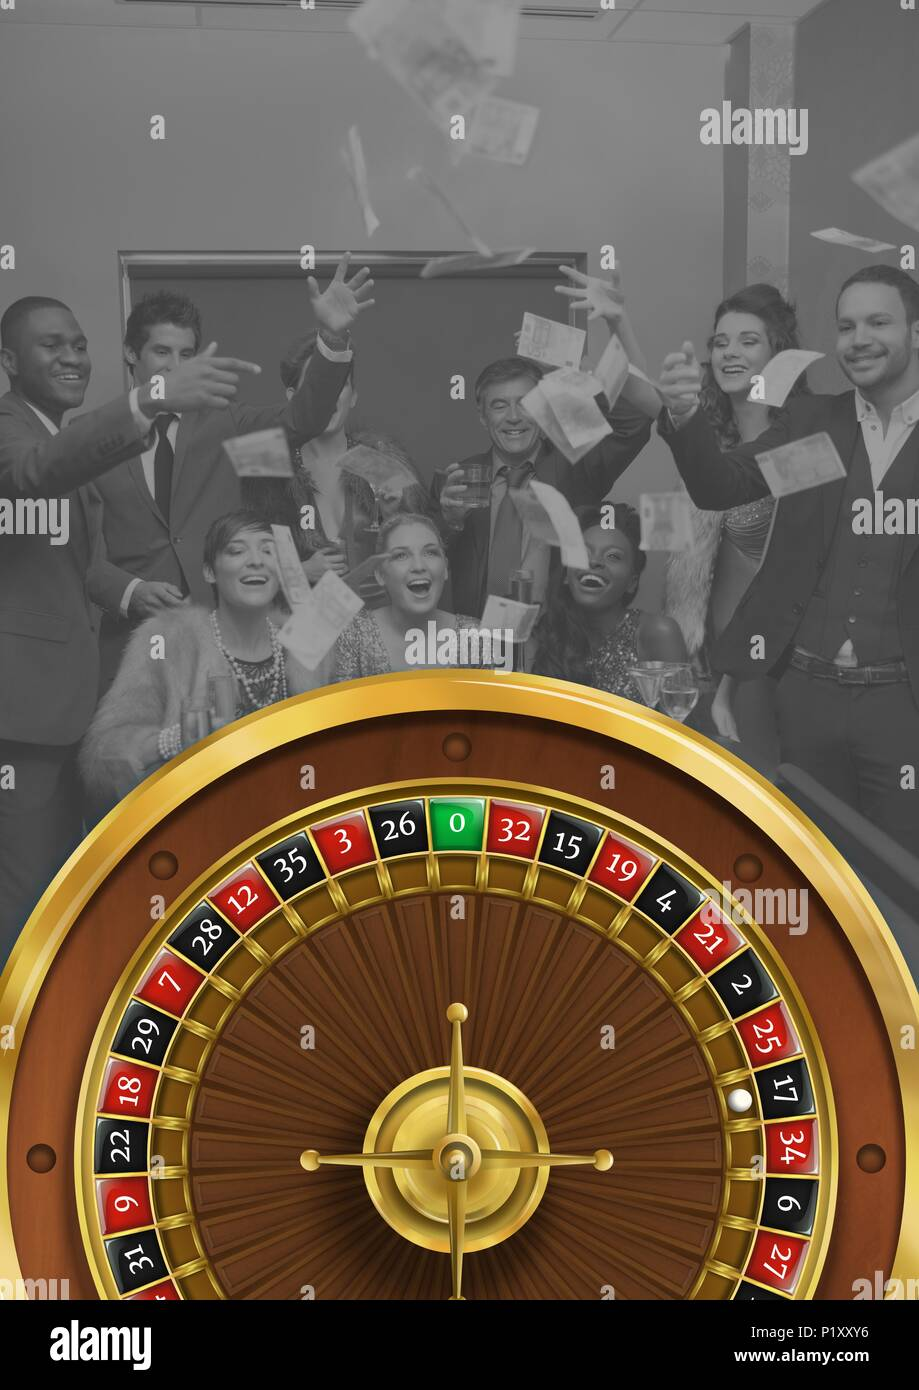 Roulette wheel with group of people celebrating - Stock Image